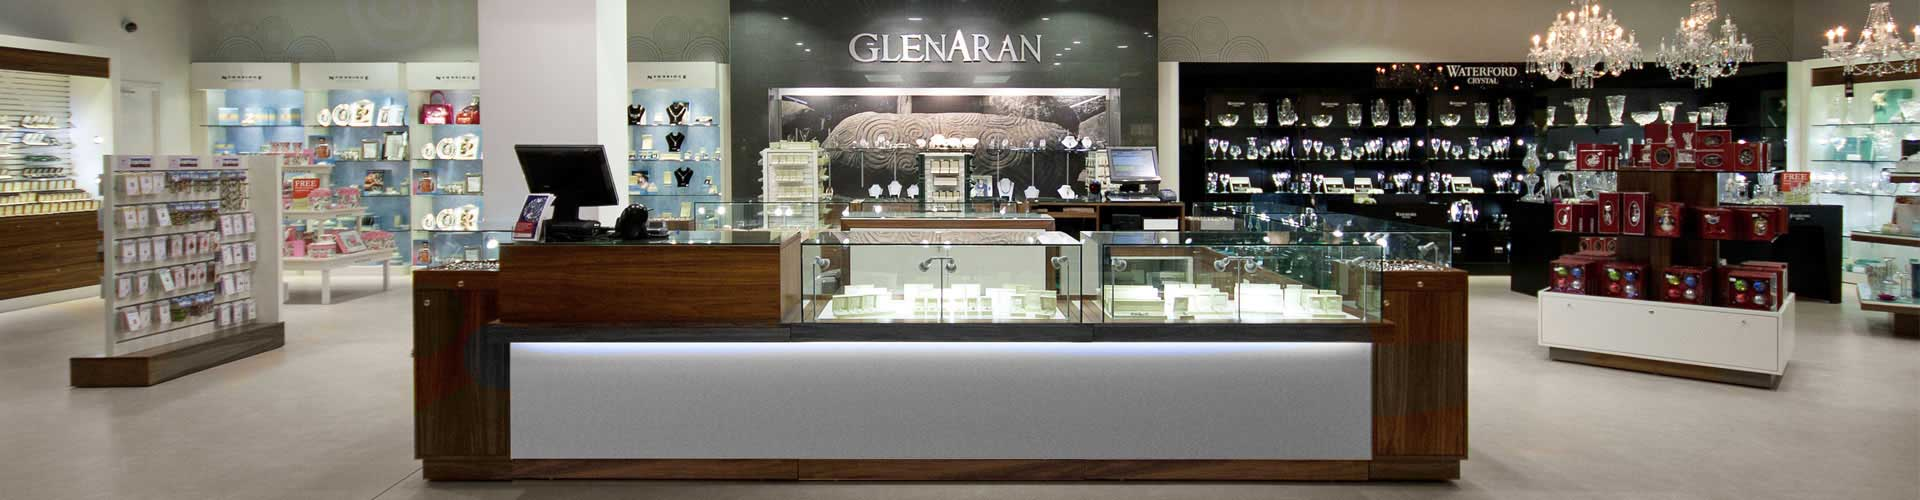 Giftware_Shopfitting_Glenaran